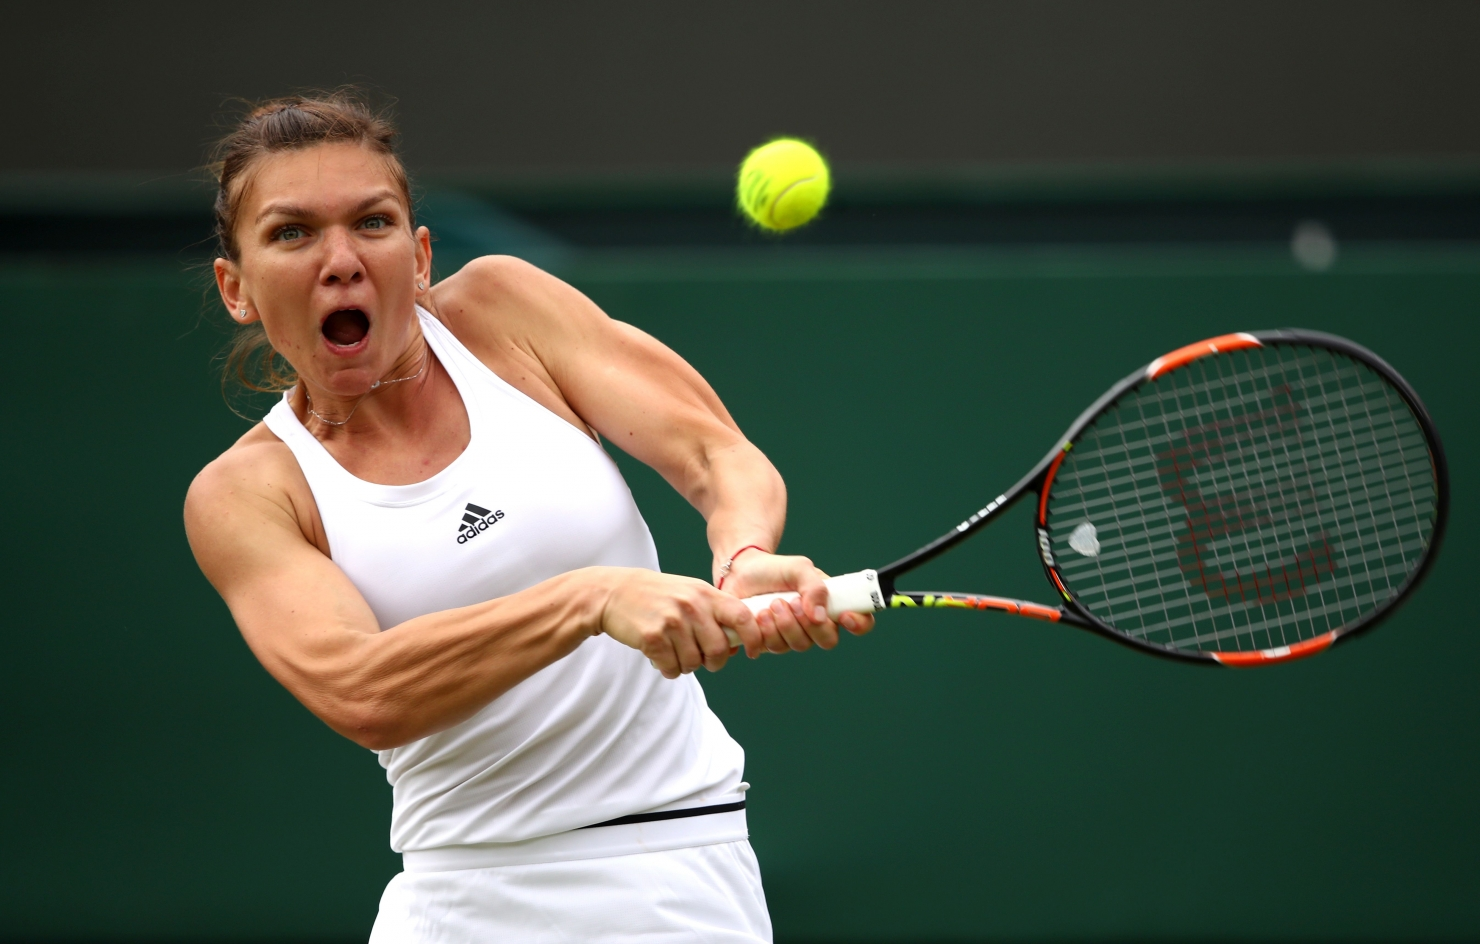 Halep vs Keys